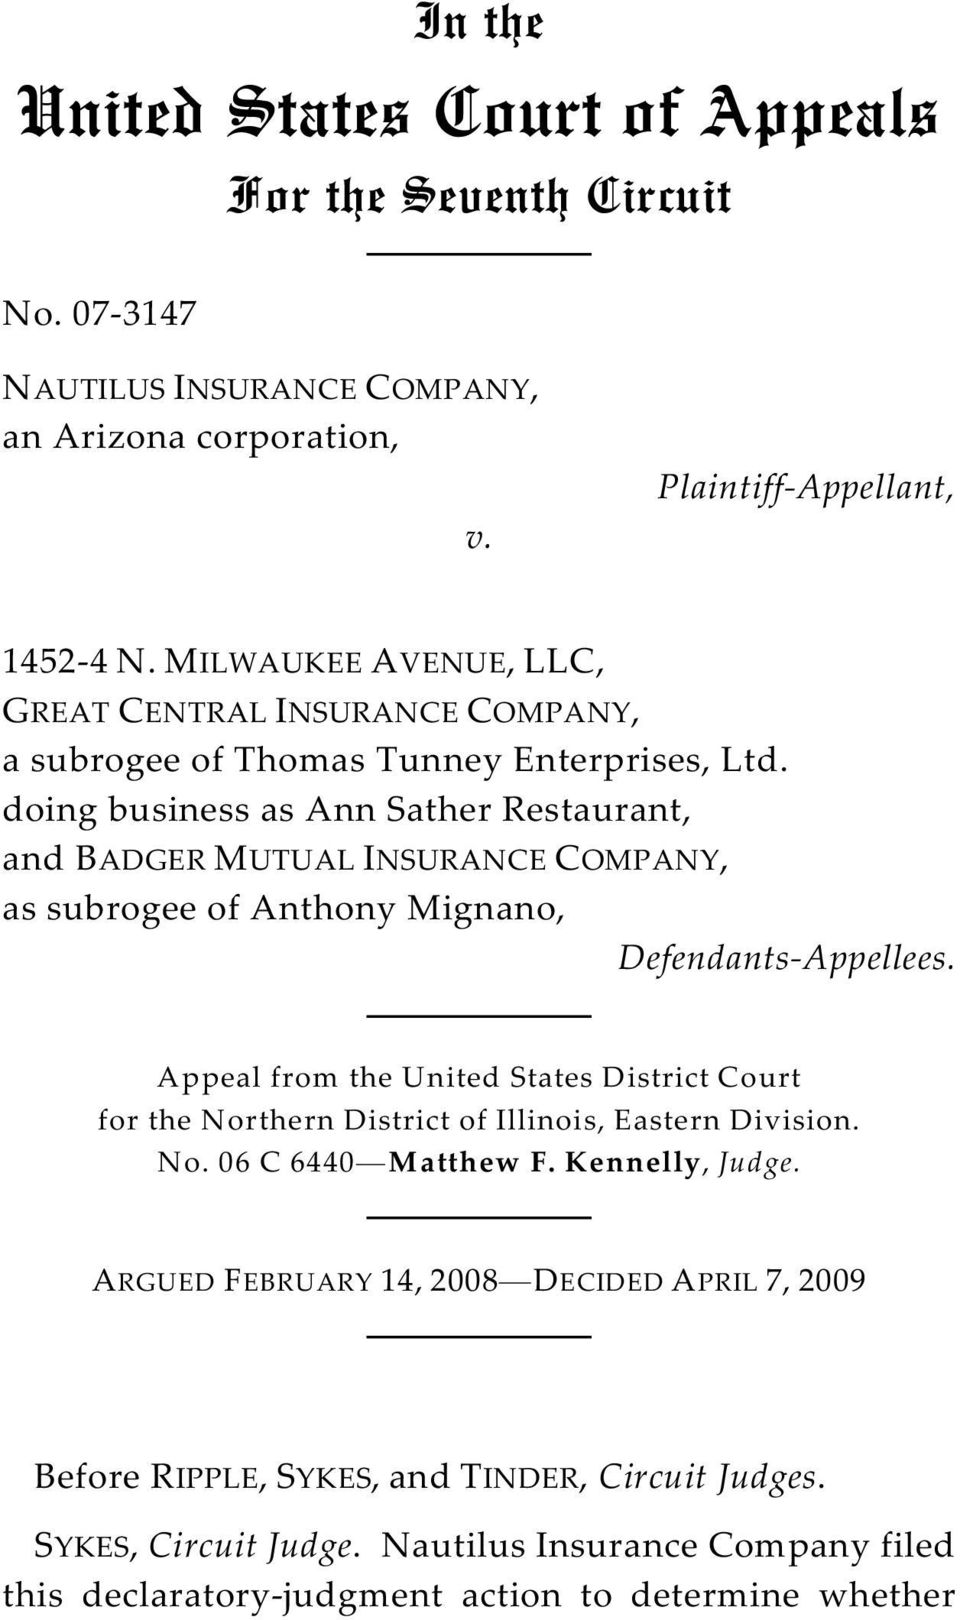 doing business as Ann Sather Restaurant, and BADGER MUTUAL INSURANCE COMPANY, as subrogee of Anthony Mignano, Defendants-Appellees.